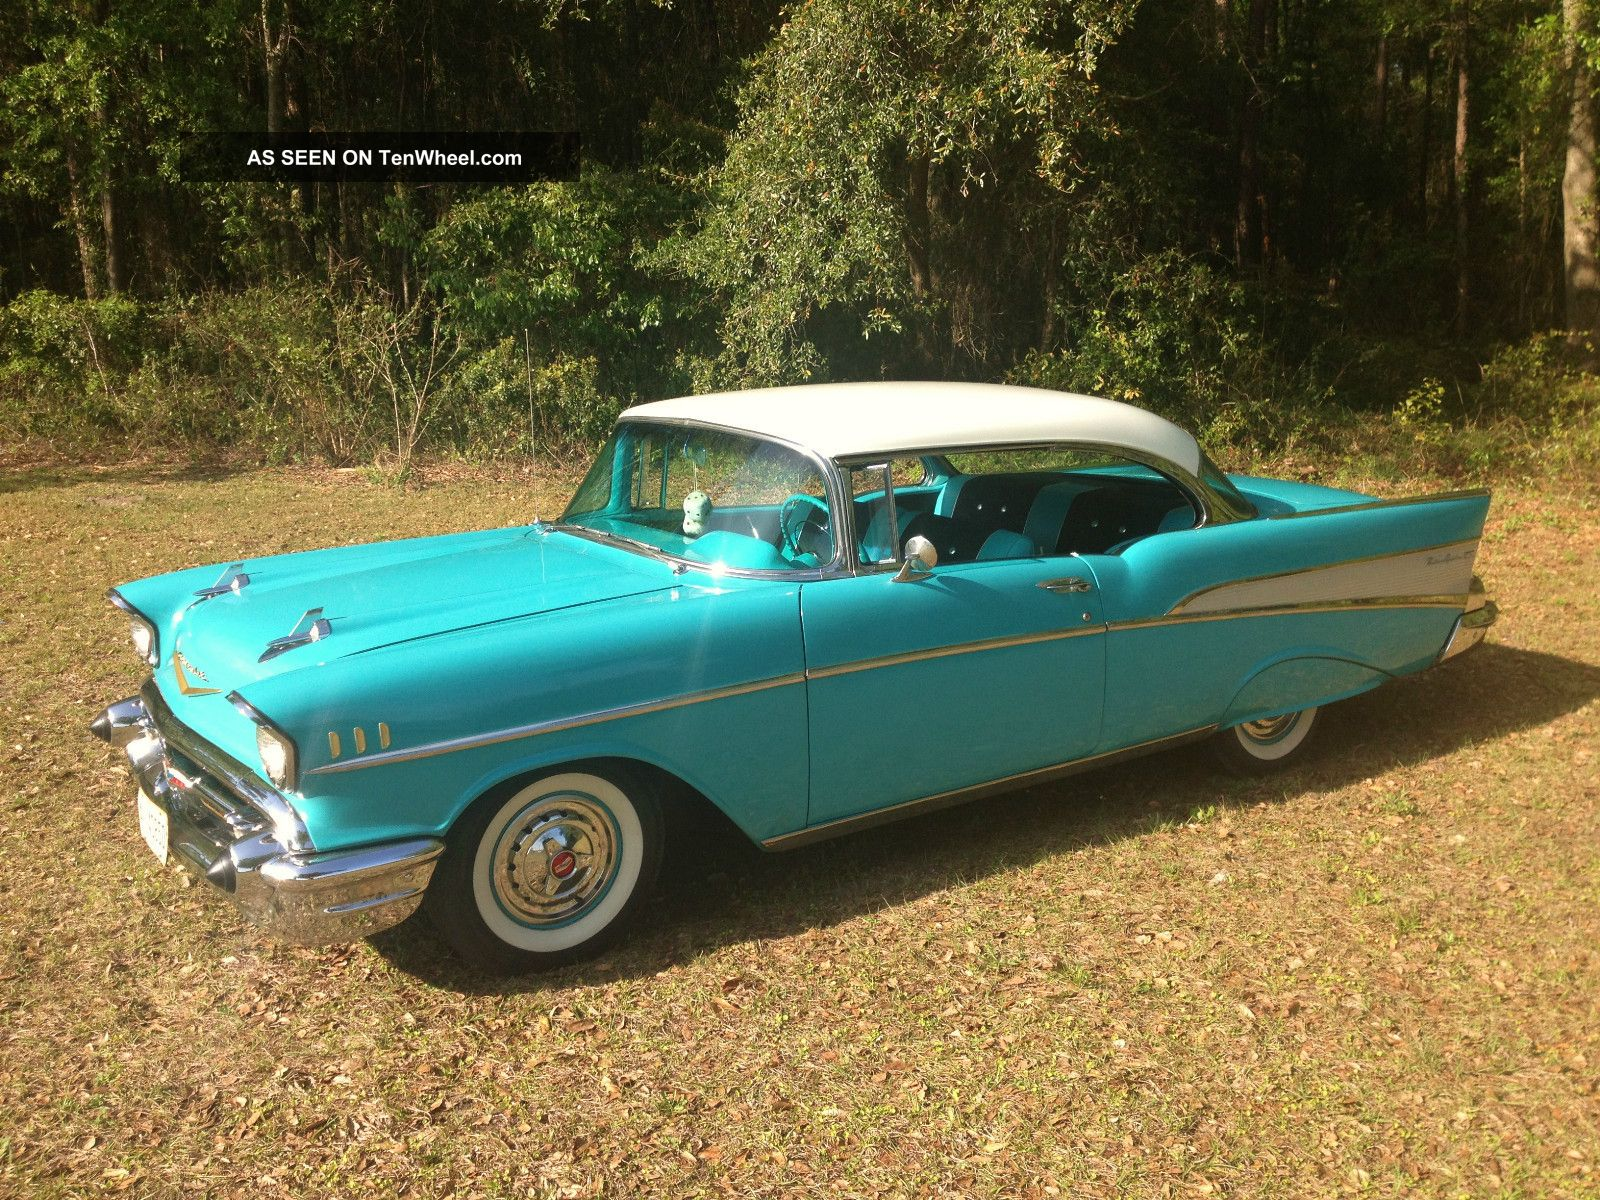 1957 Chevrolet Belair 2 Door Hardtop (chevy 55 56 57) Bel Air/150/210 photo